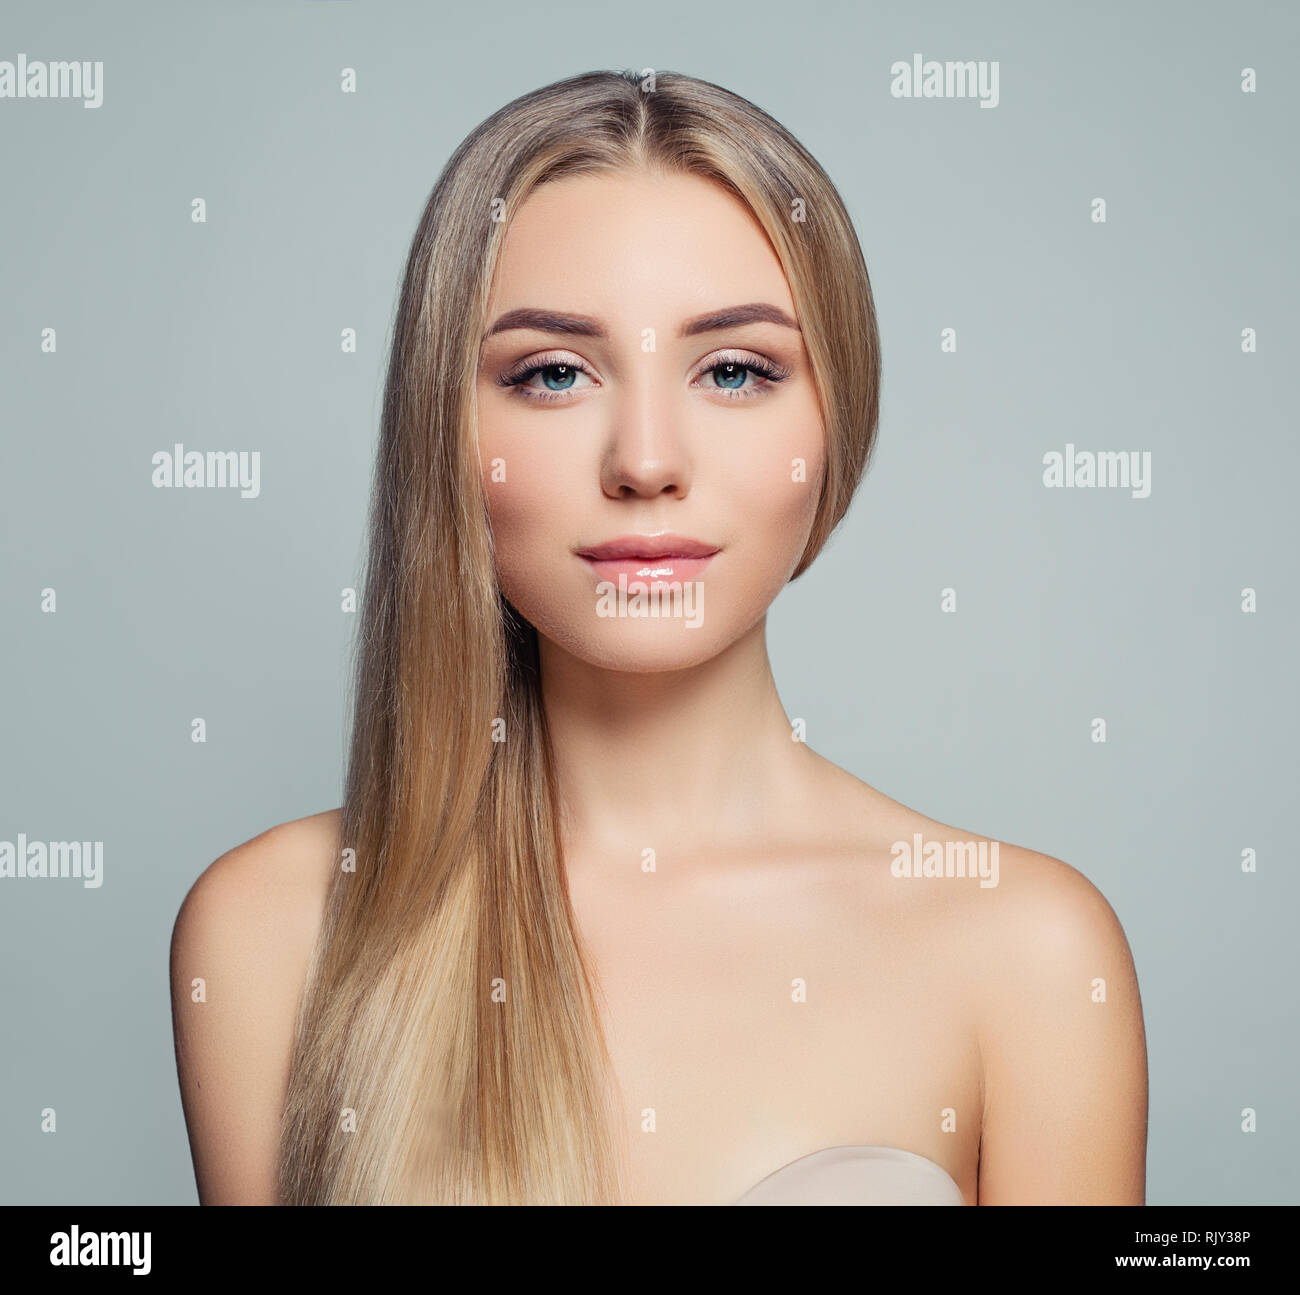 Cute Girl With Long Straight Blonde Hair And Healthy Skin Beautiful Female Face Facial Treatment Haircare Facial Lifting And Cosmetology Concept Stock Photo Alamy